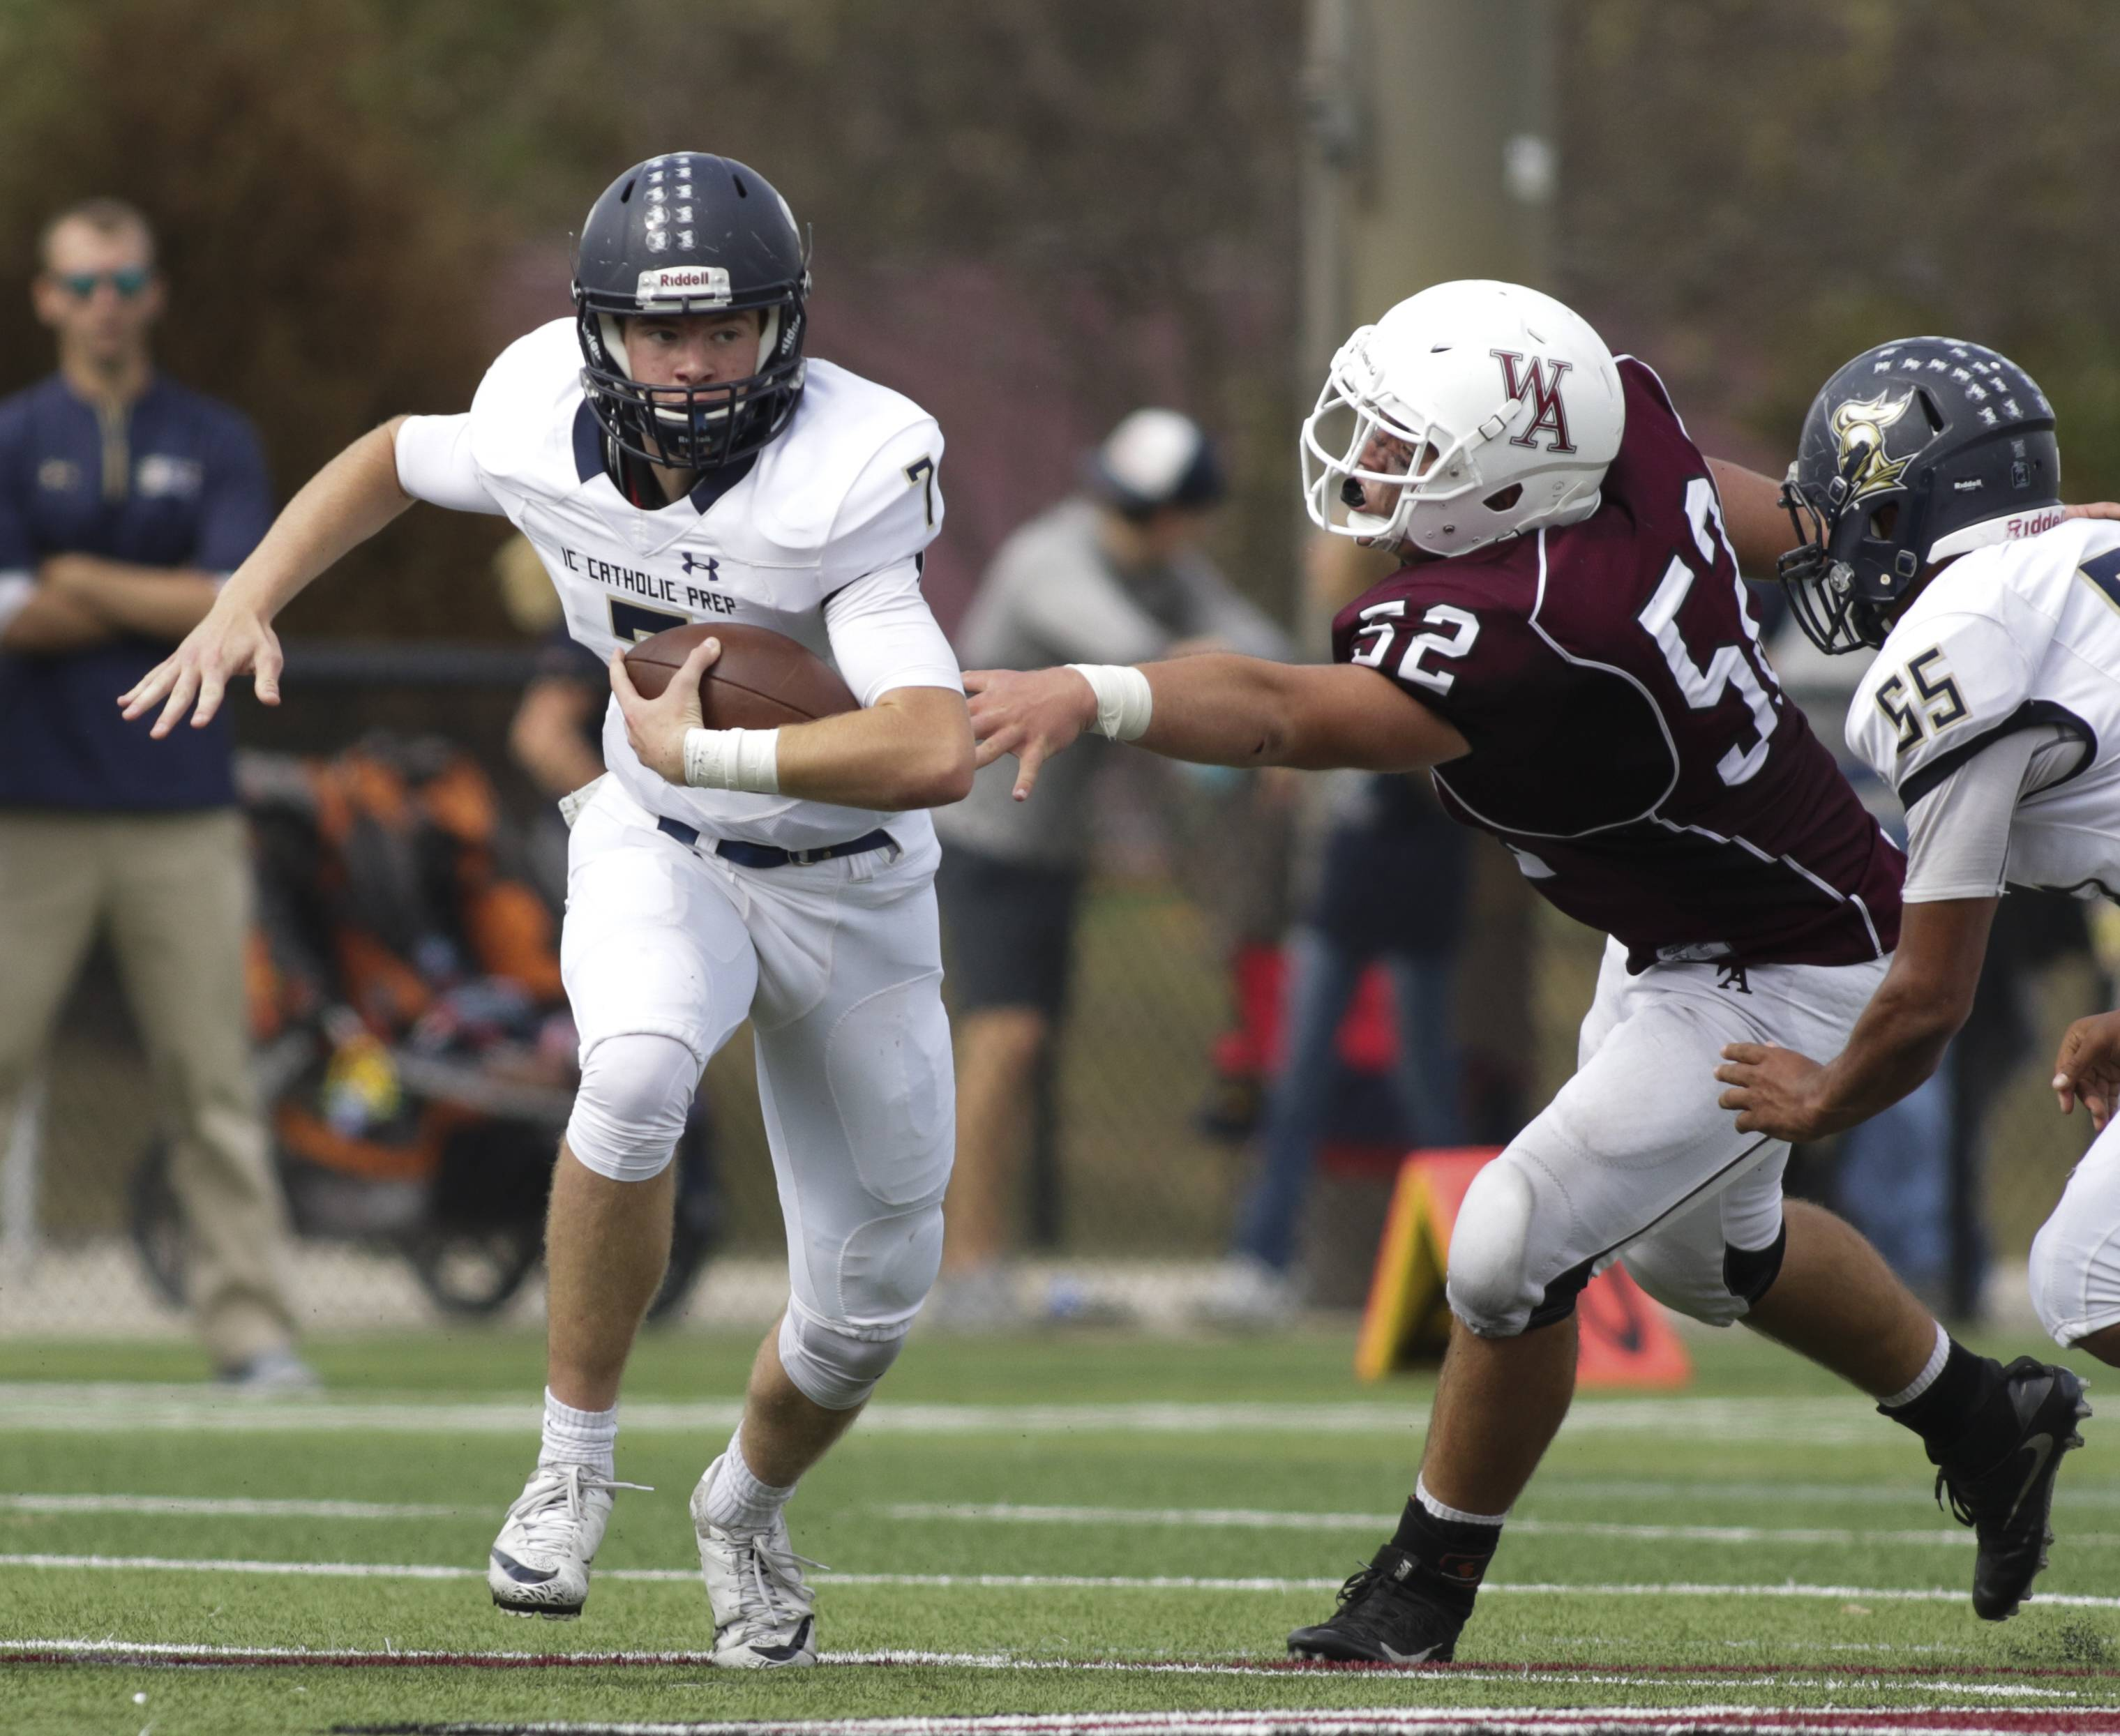 IC Catholic Prep quarterback CJ West, left, eludes the tackle of Derek Johanik of Wheaton Academy earlier this season.